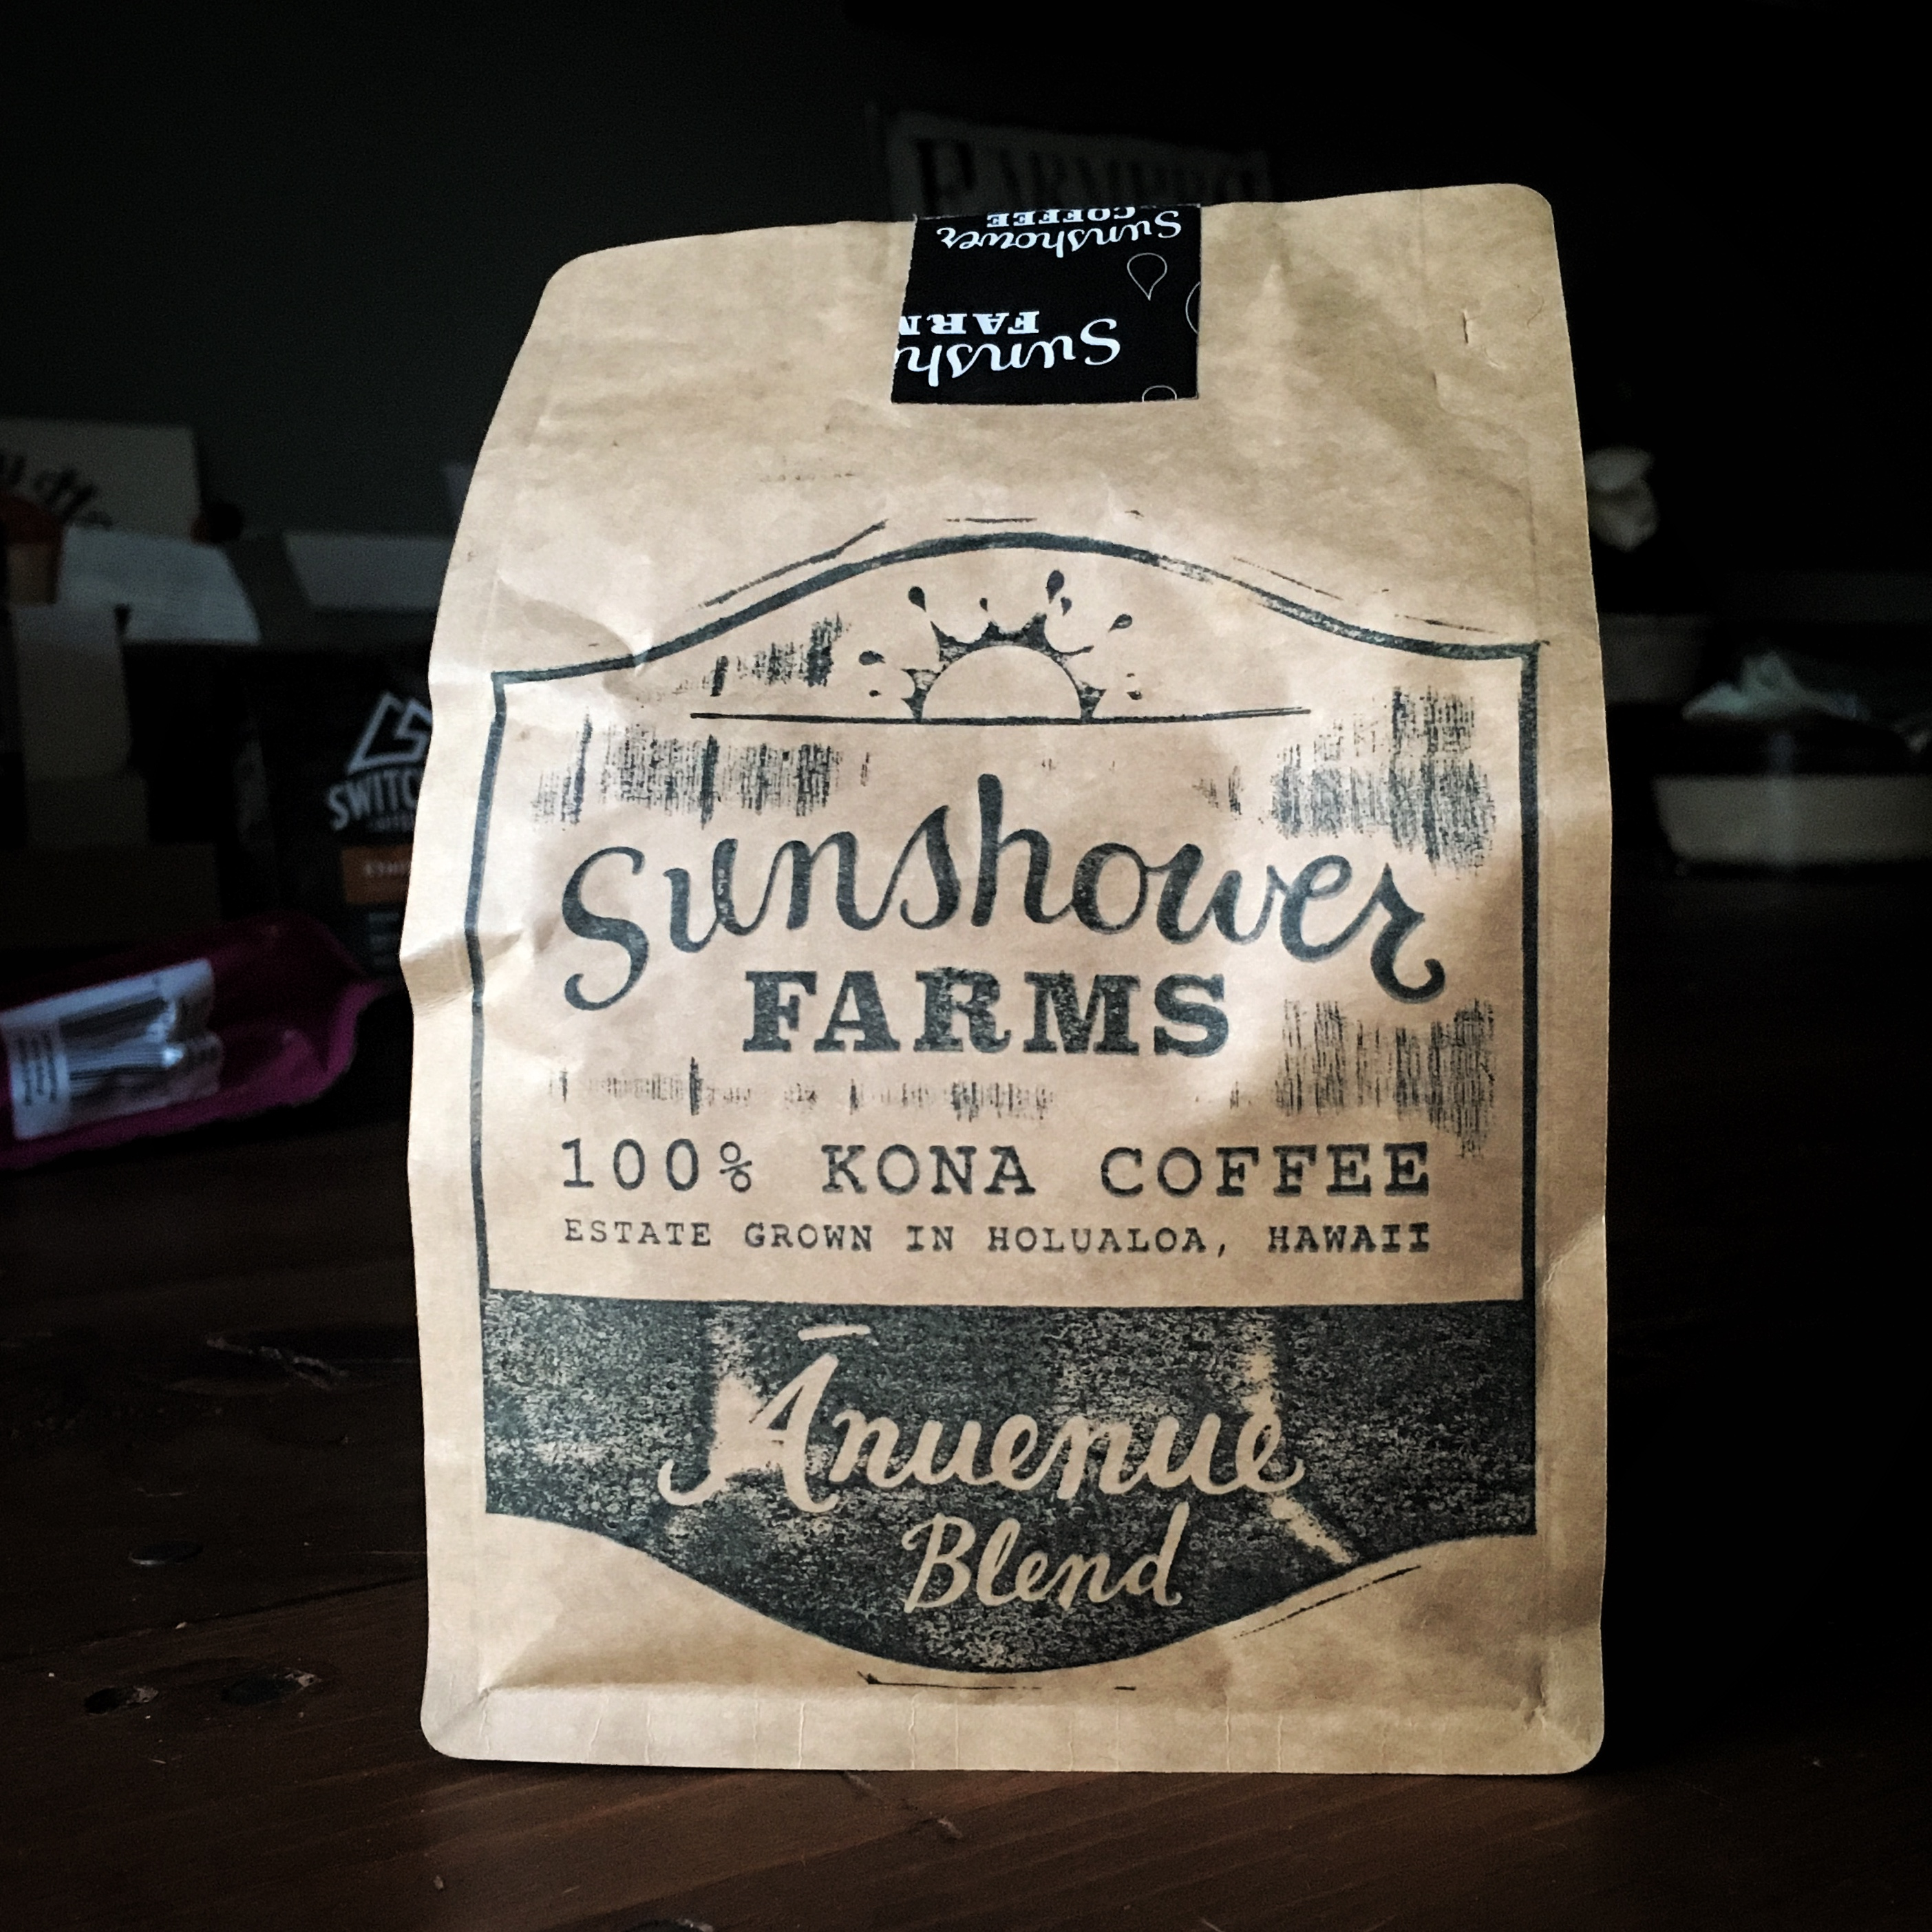 Sunshower Farms Anuenue Blend – 100% Kona